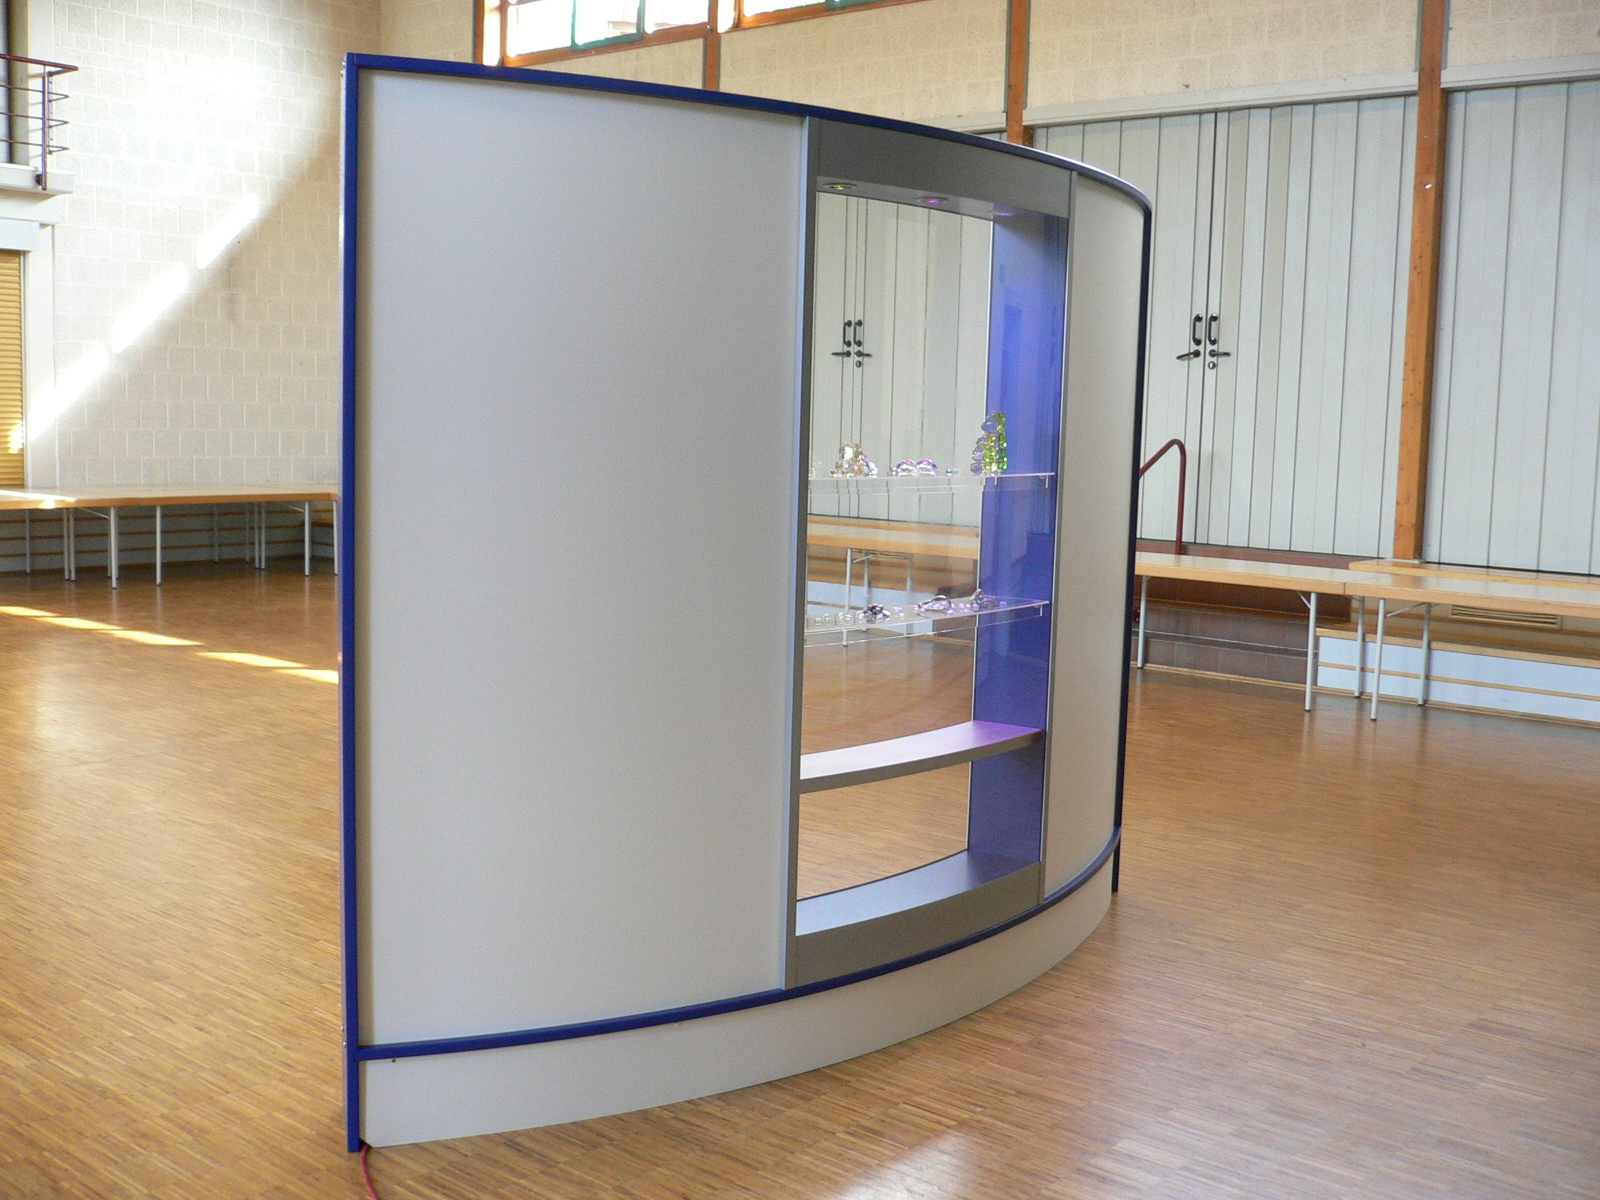 Wave Display Dynamik und Transparens